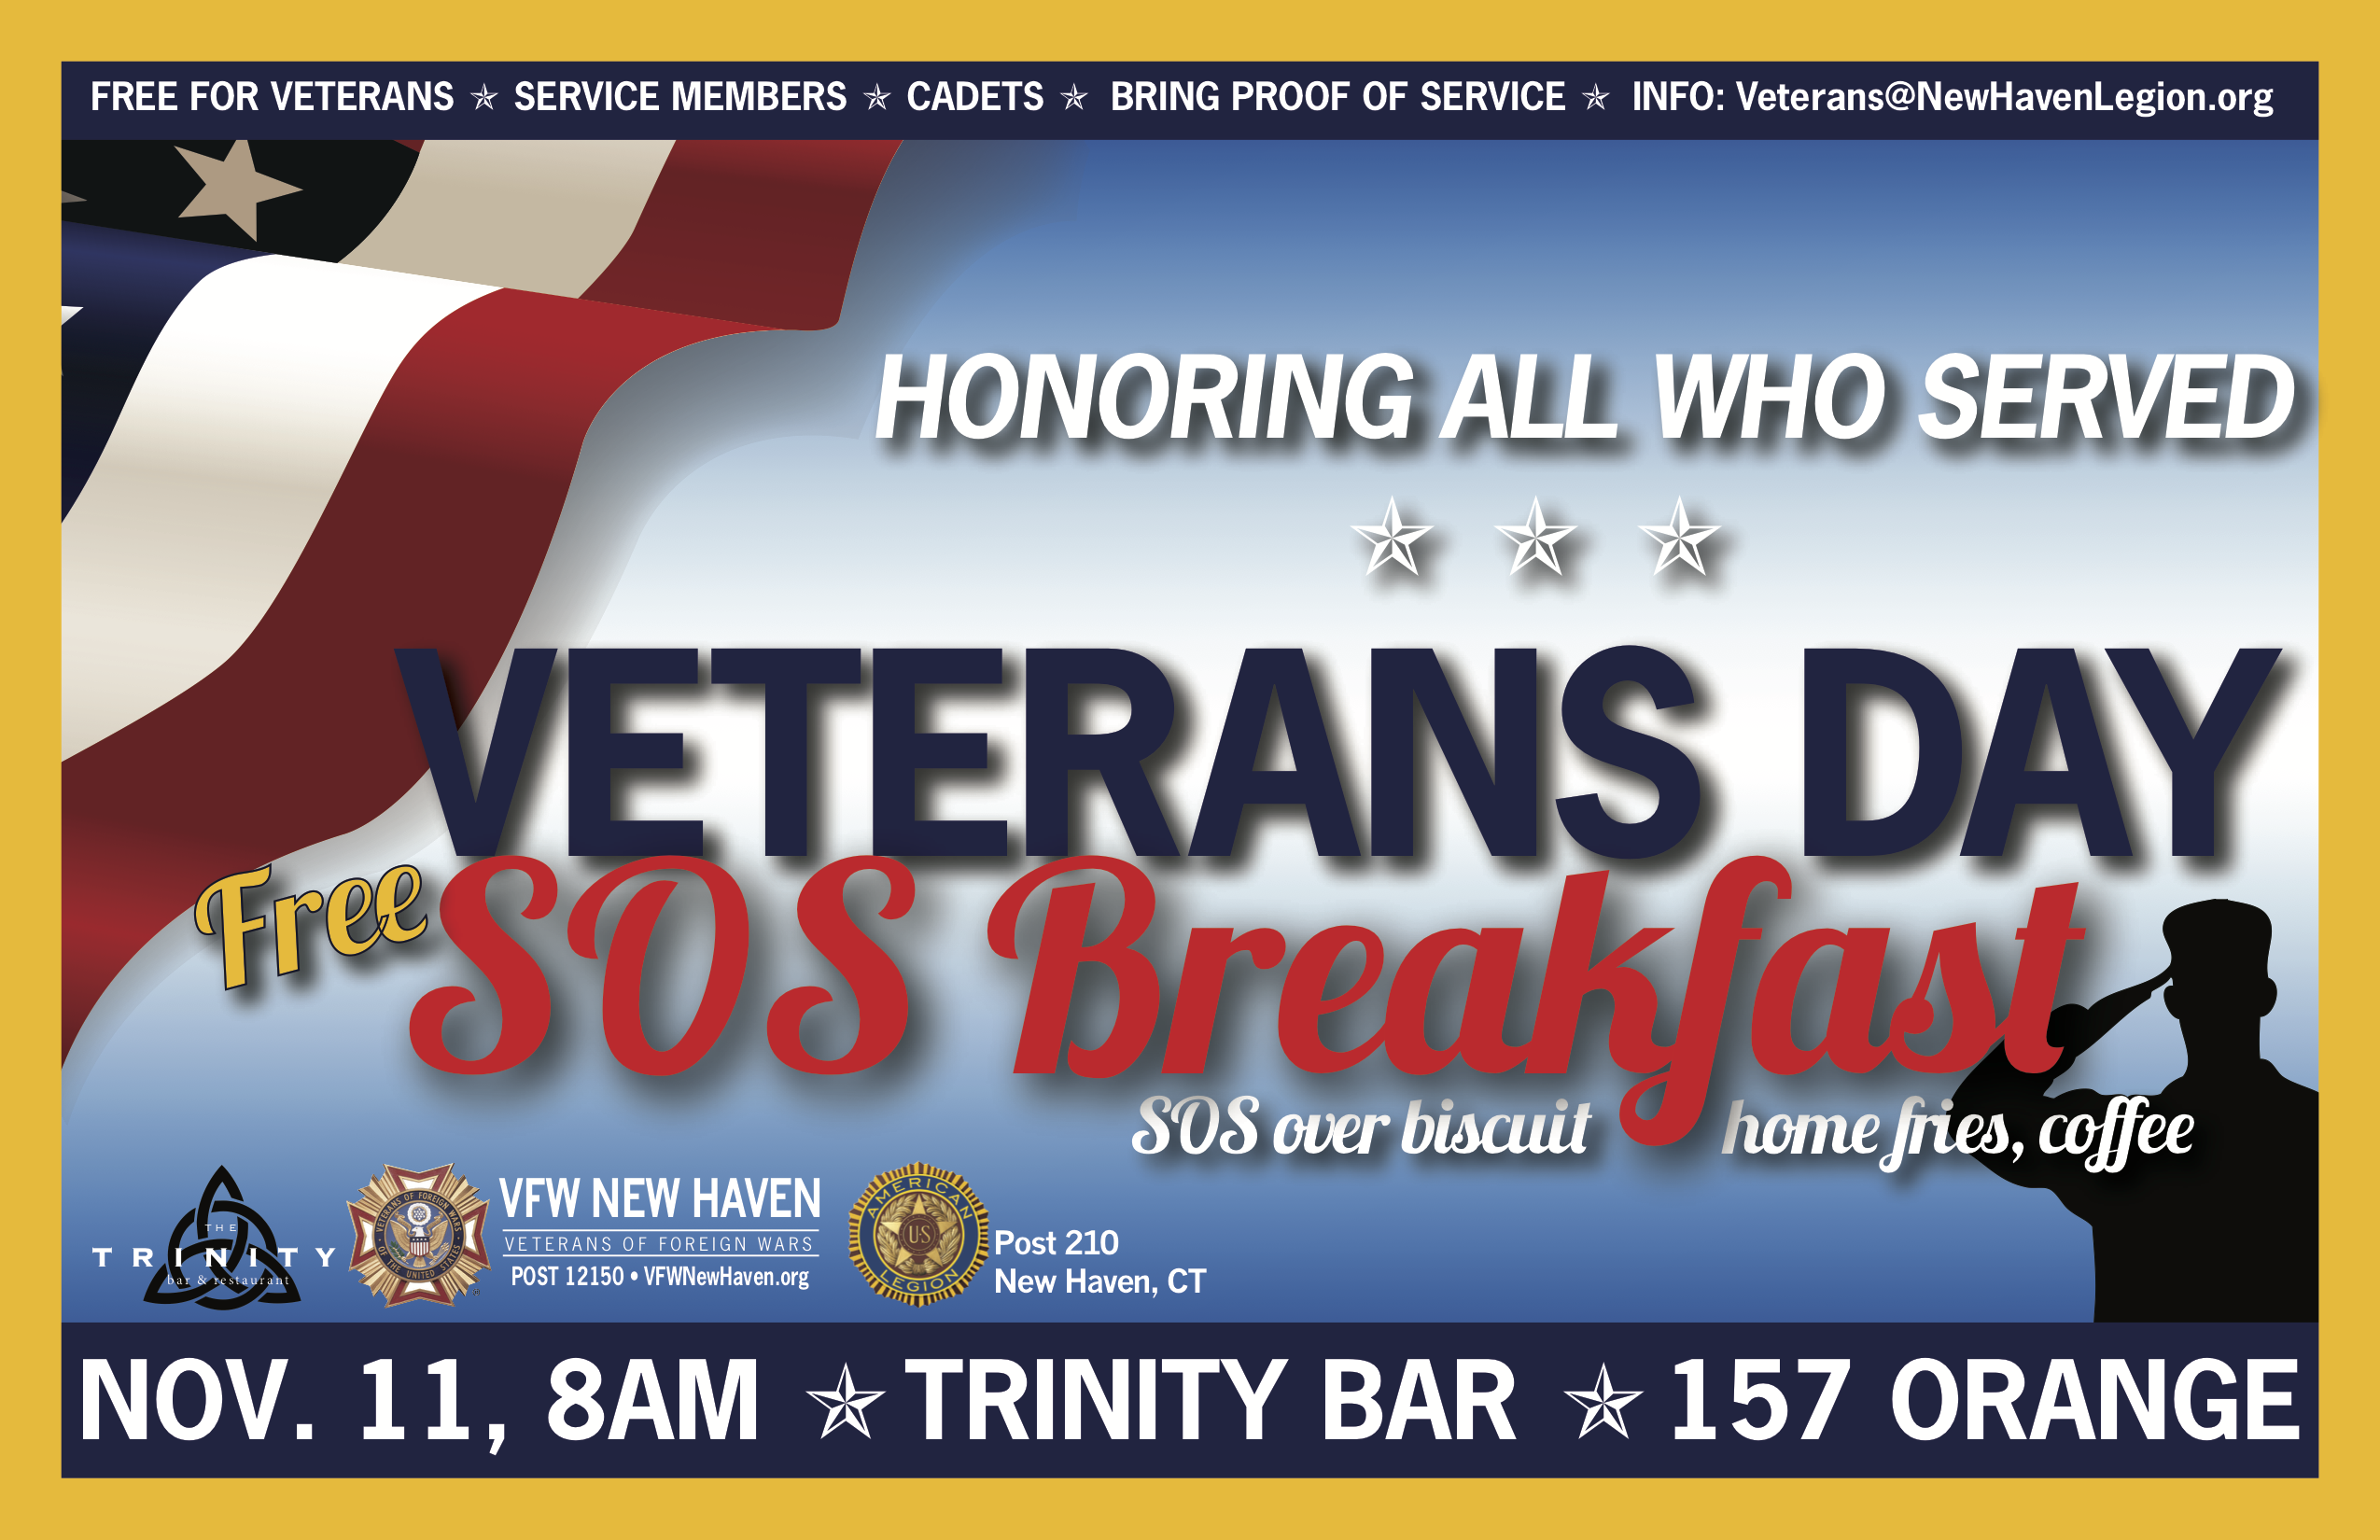 Veterans Day SOS Breakfast